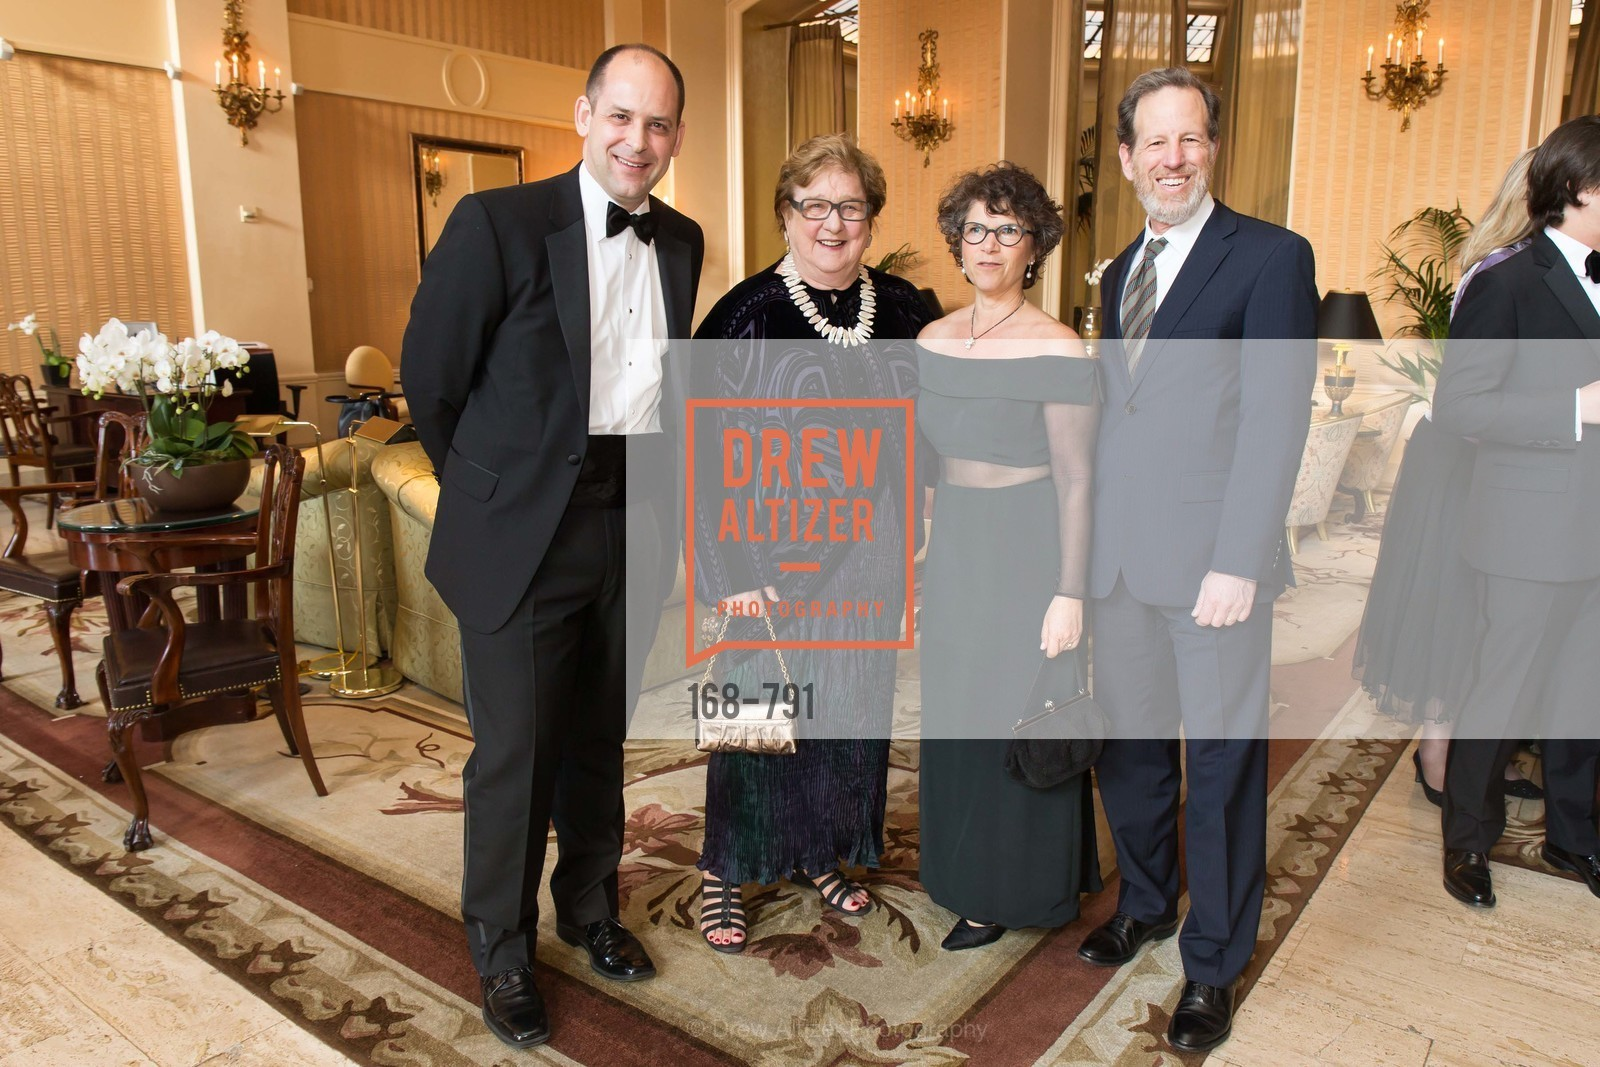 Mike Buhler, Linda Jo Fitz, Rebecca Schnier, Philip Witte, SAN FRANCISCO HERITAGE Soiree 2015, US, April 19th, 2015,Drew Altizer, Drew Altizer Photography, full-service agency, private events, San Francisco photographer, photographer california